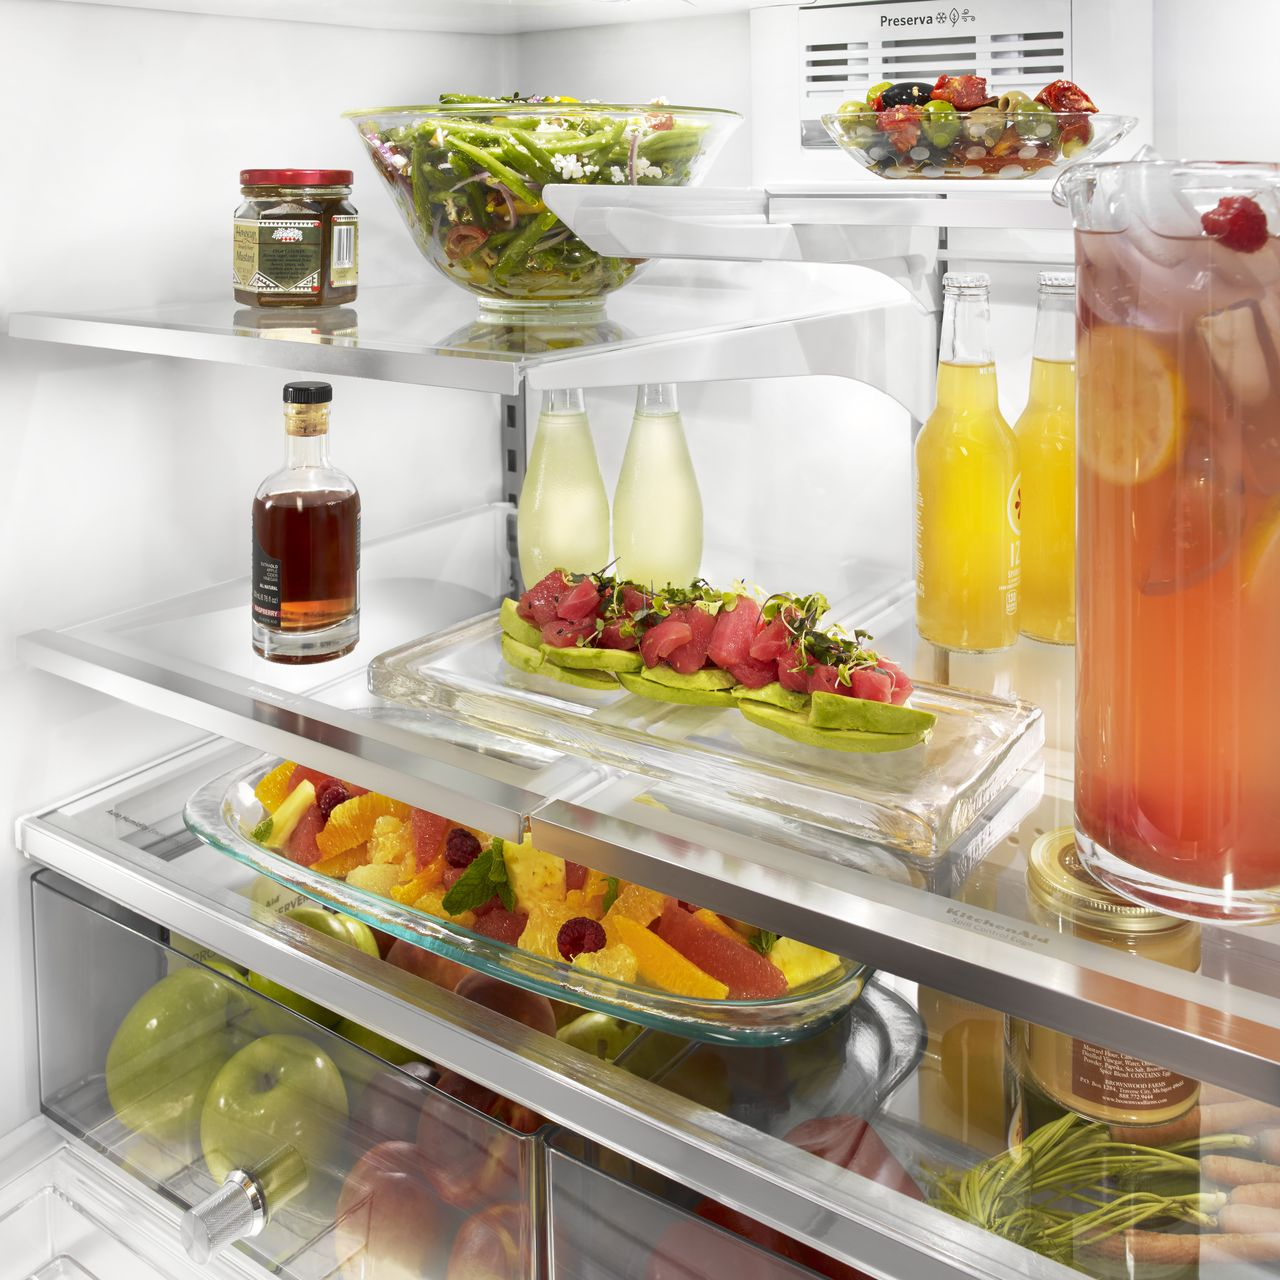 Whirlpool Corporation, The Worldu0027s Leading Manufacturer Of Major Home  Appliances, Designs In Home Solutions That Help Make The Most Of Every ...